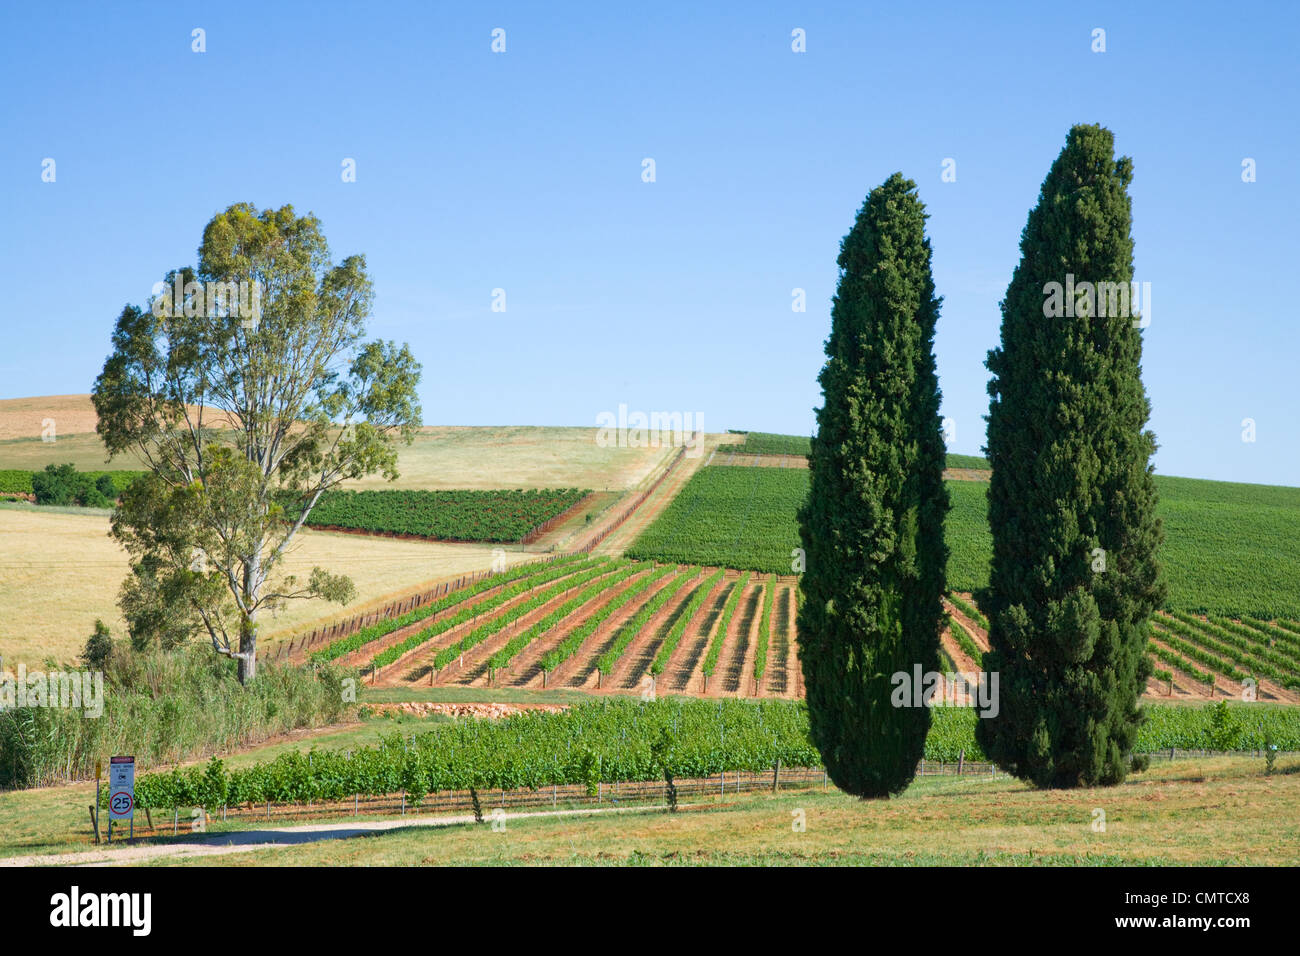 Vineyard in the Clare Valley, South Australia. - Stock Image